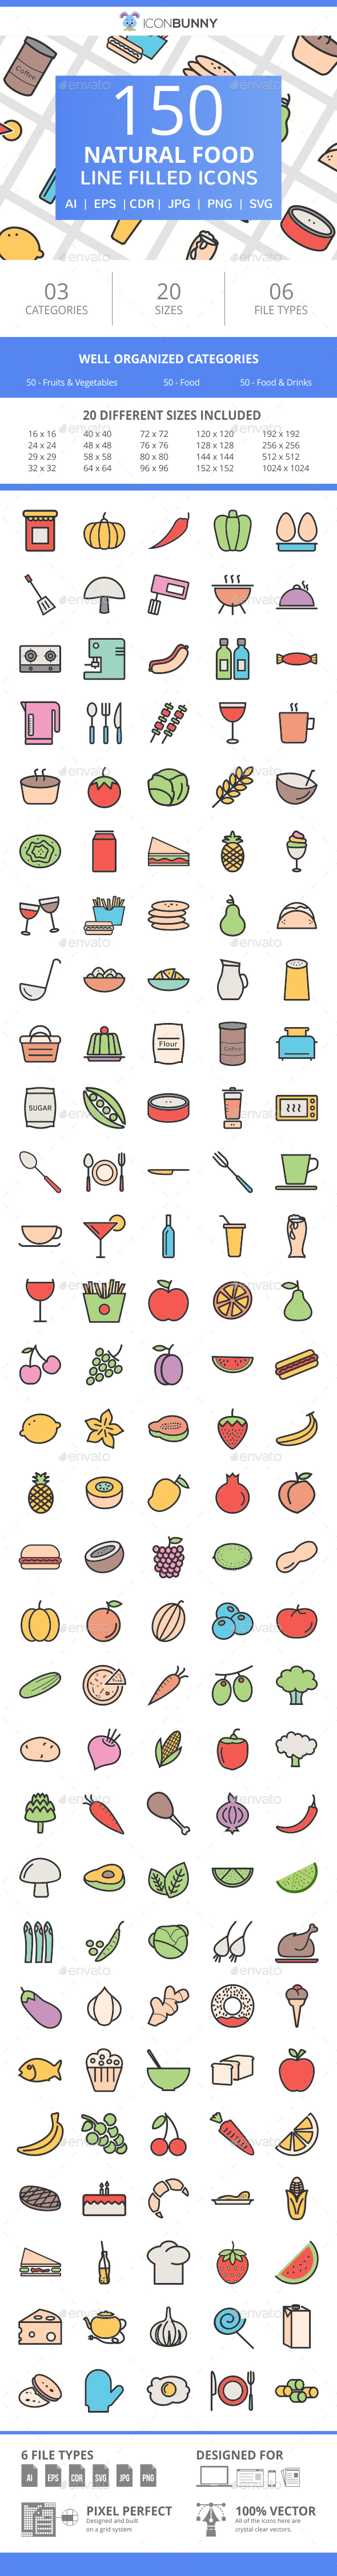 150 Natural Food Filled Line Icons - Icons